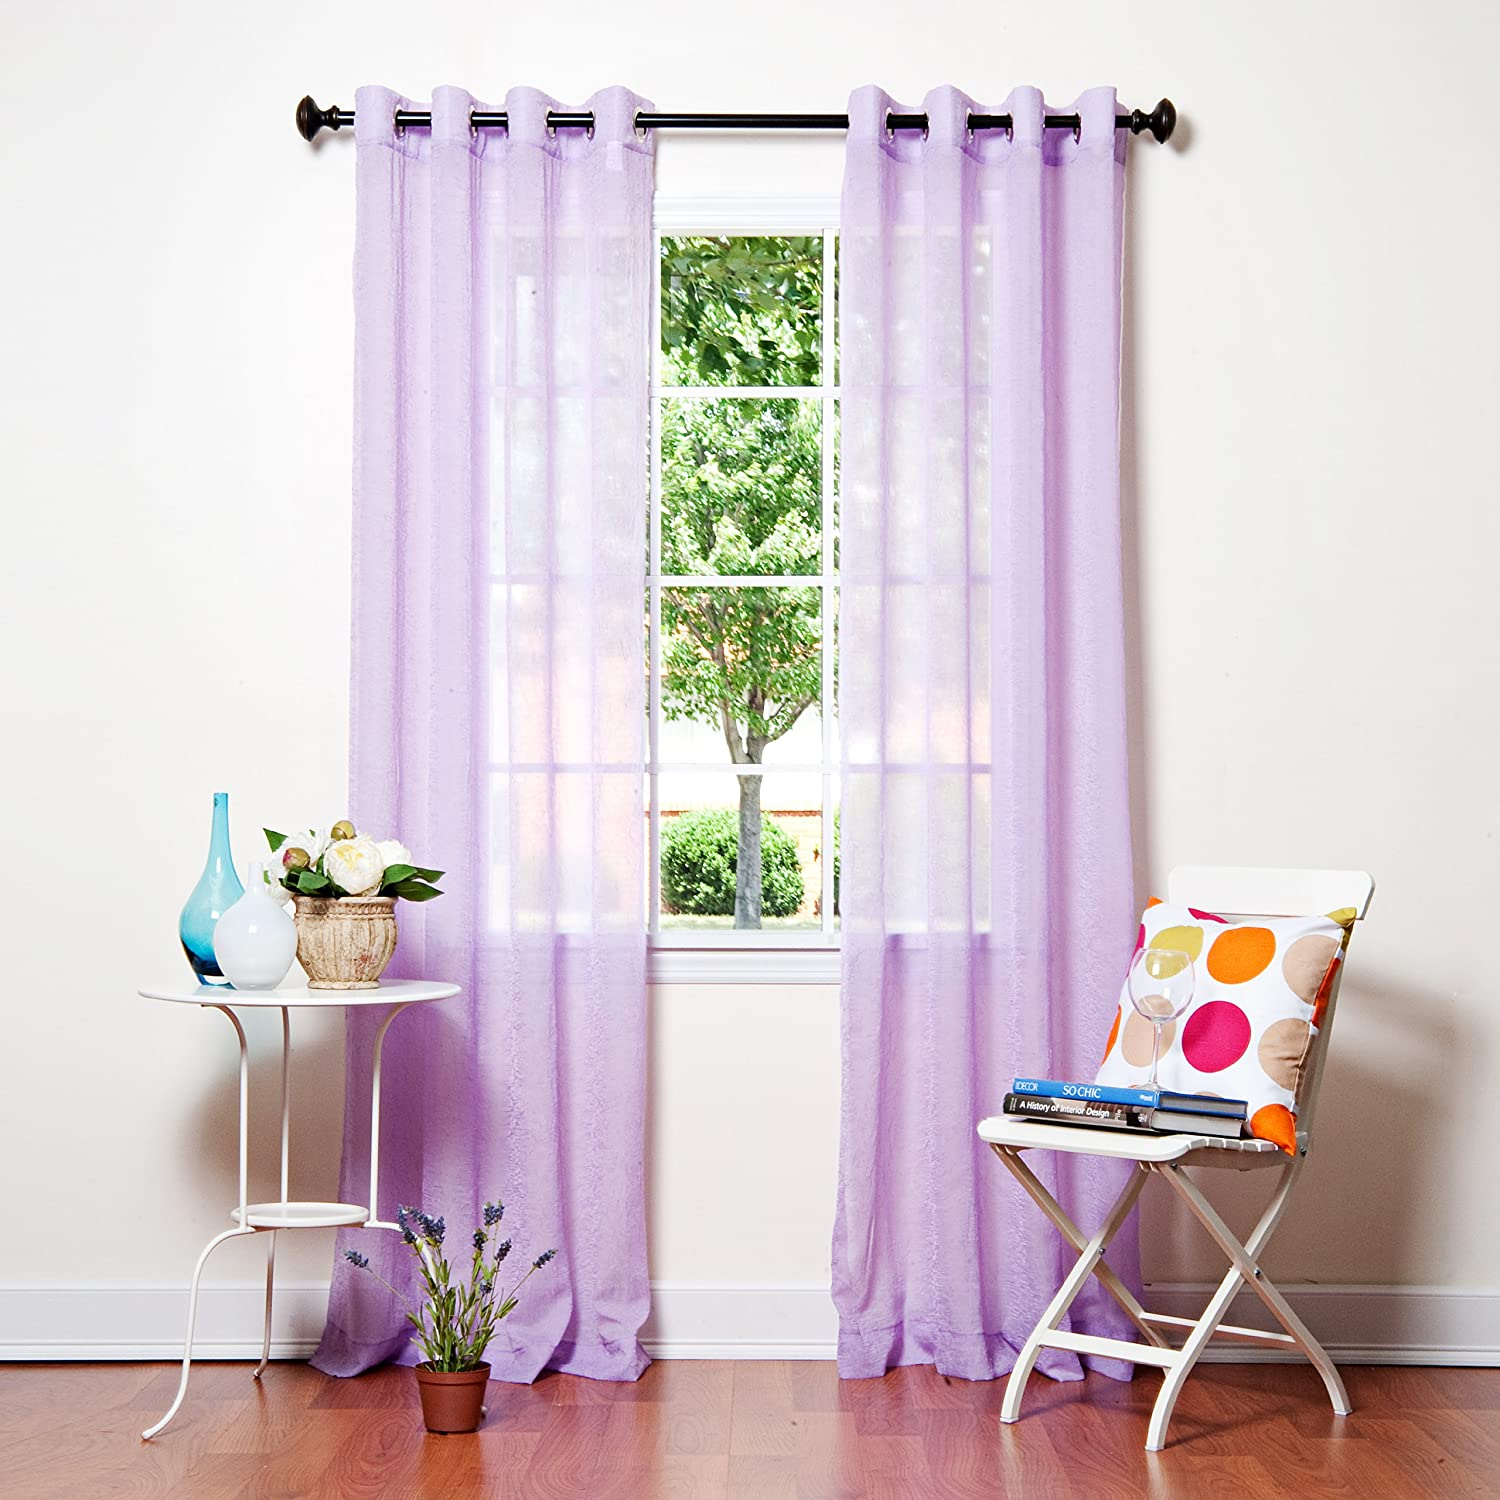 Best Home Fashion Closeout Crushed Voile Sheer Curtains - Antique Bronze Grommet Top - Purple - 52